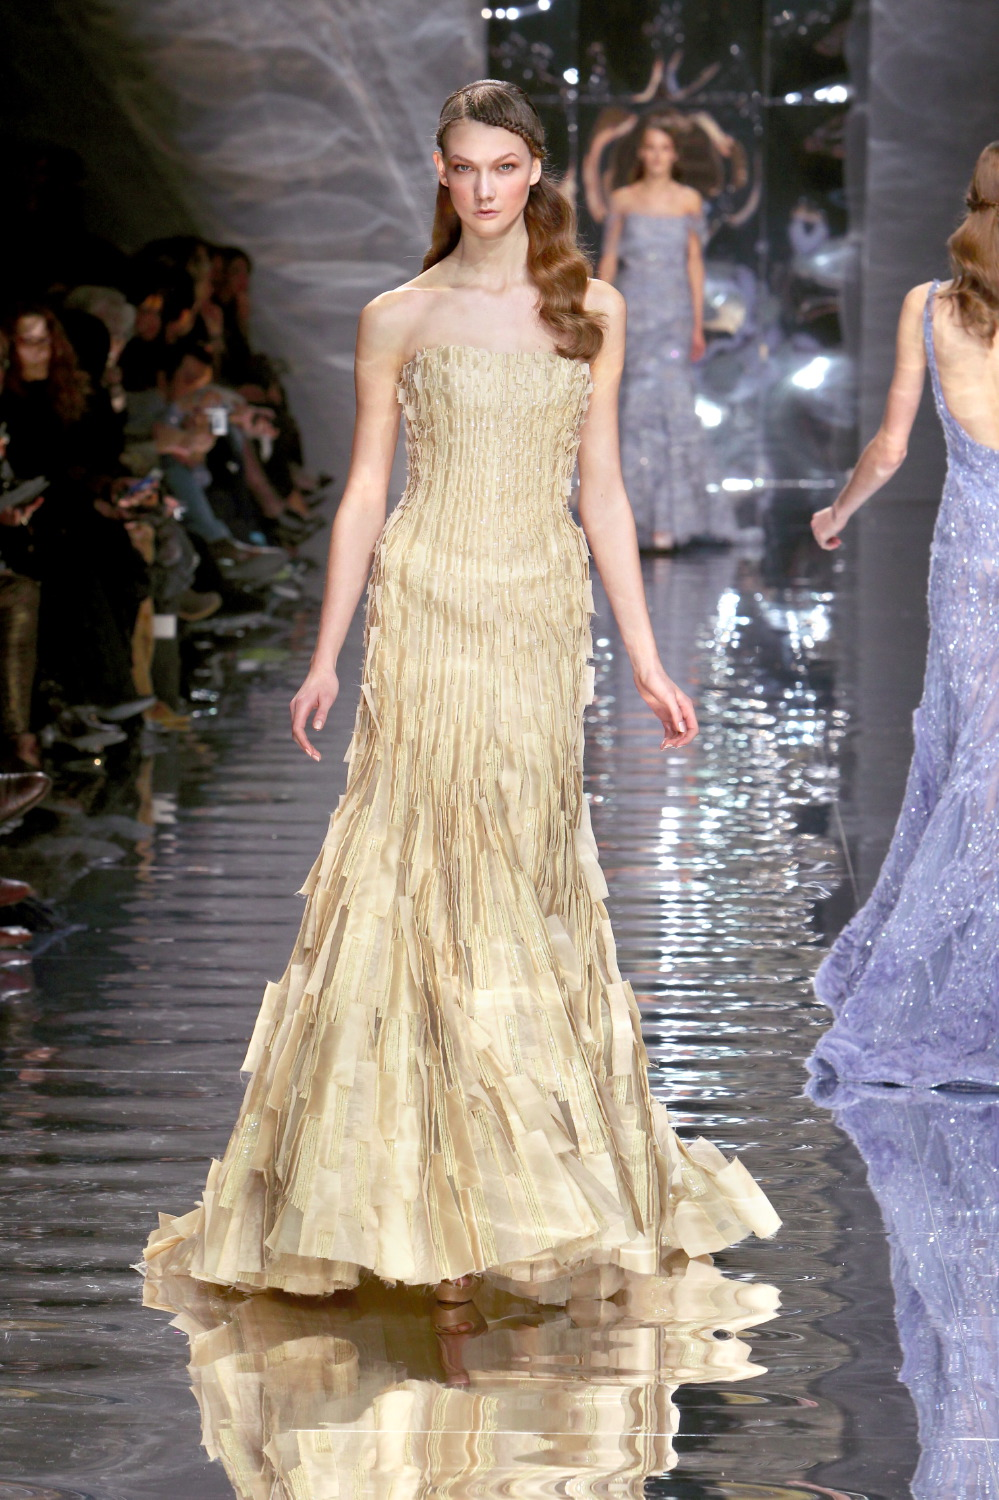 Elie saab haute couture spring 2010 a fairytale world for New haute couture designers